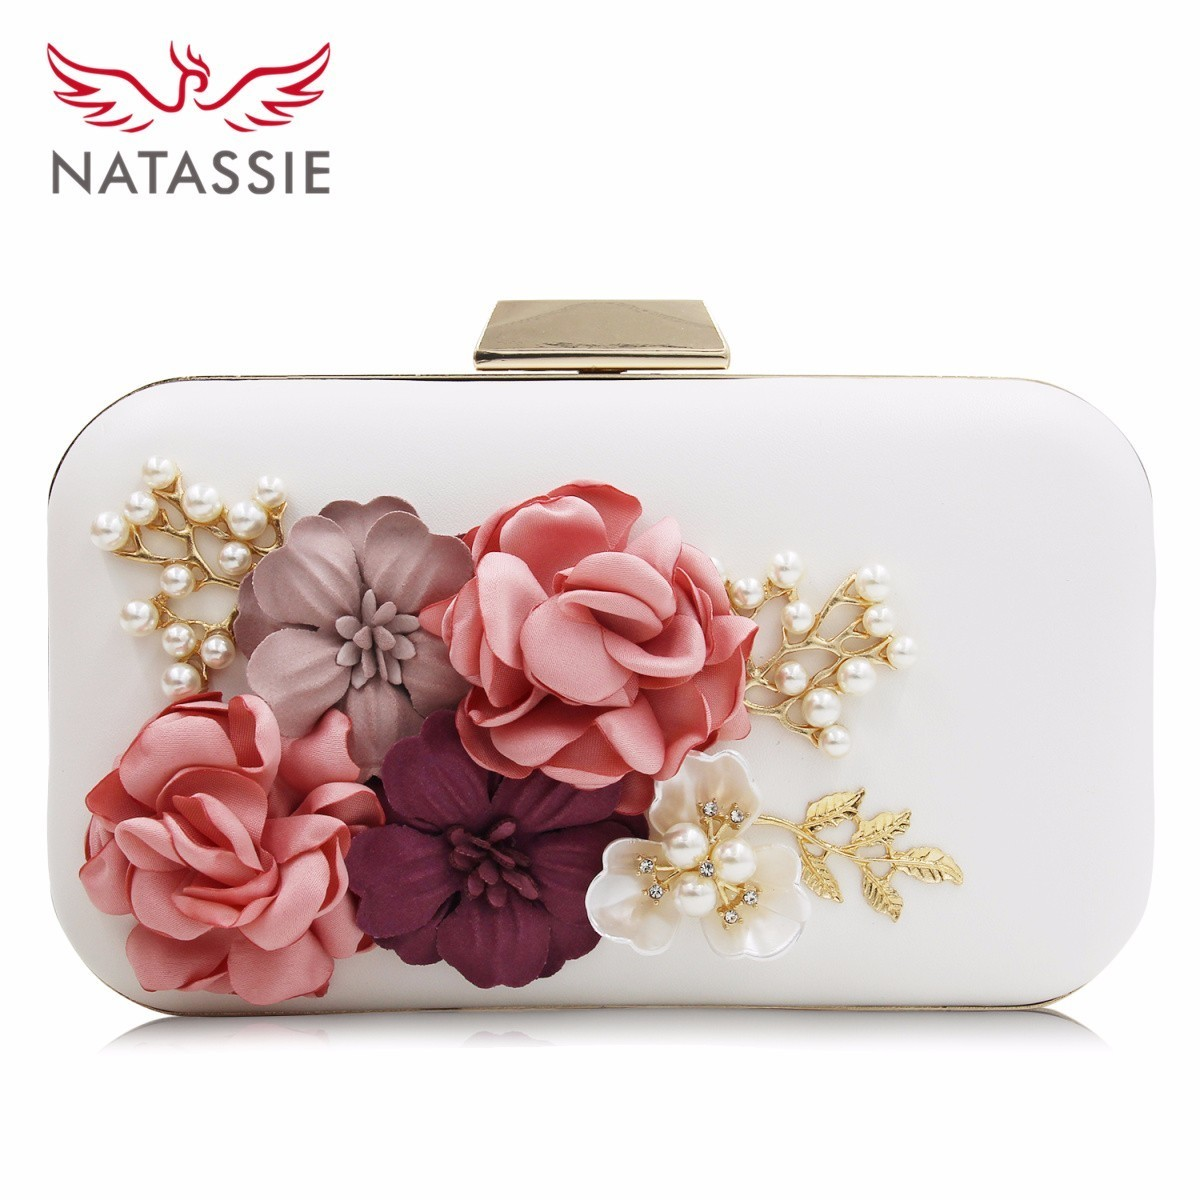 Natassie Brand Women Flower Wedding Party Clutch Purse Ladies Evening Bag Royal Blue Day Clutches With Pearl Chain natassie women clutch bags full crystal evening bag blue party purse ladies wedding handbag with long chain